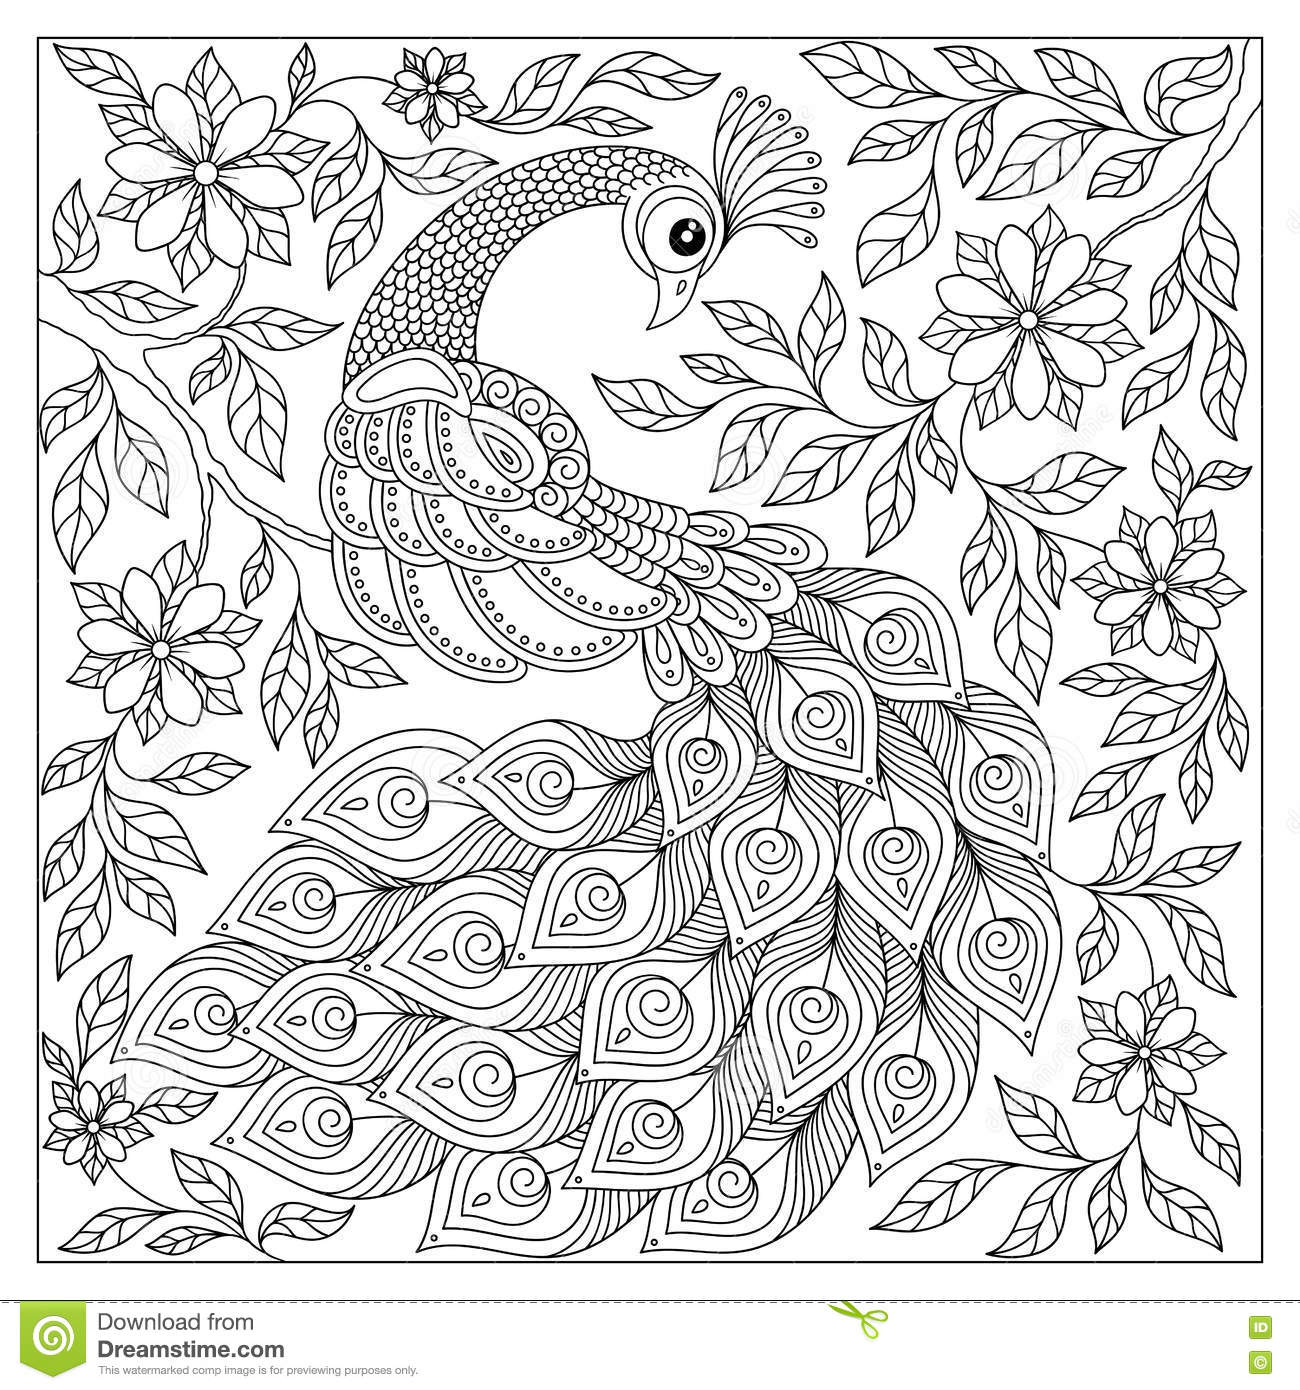 Vintage Hand Drawn Pattern Black And White Doodle Peacock